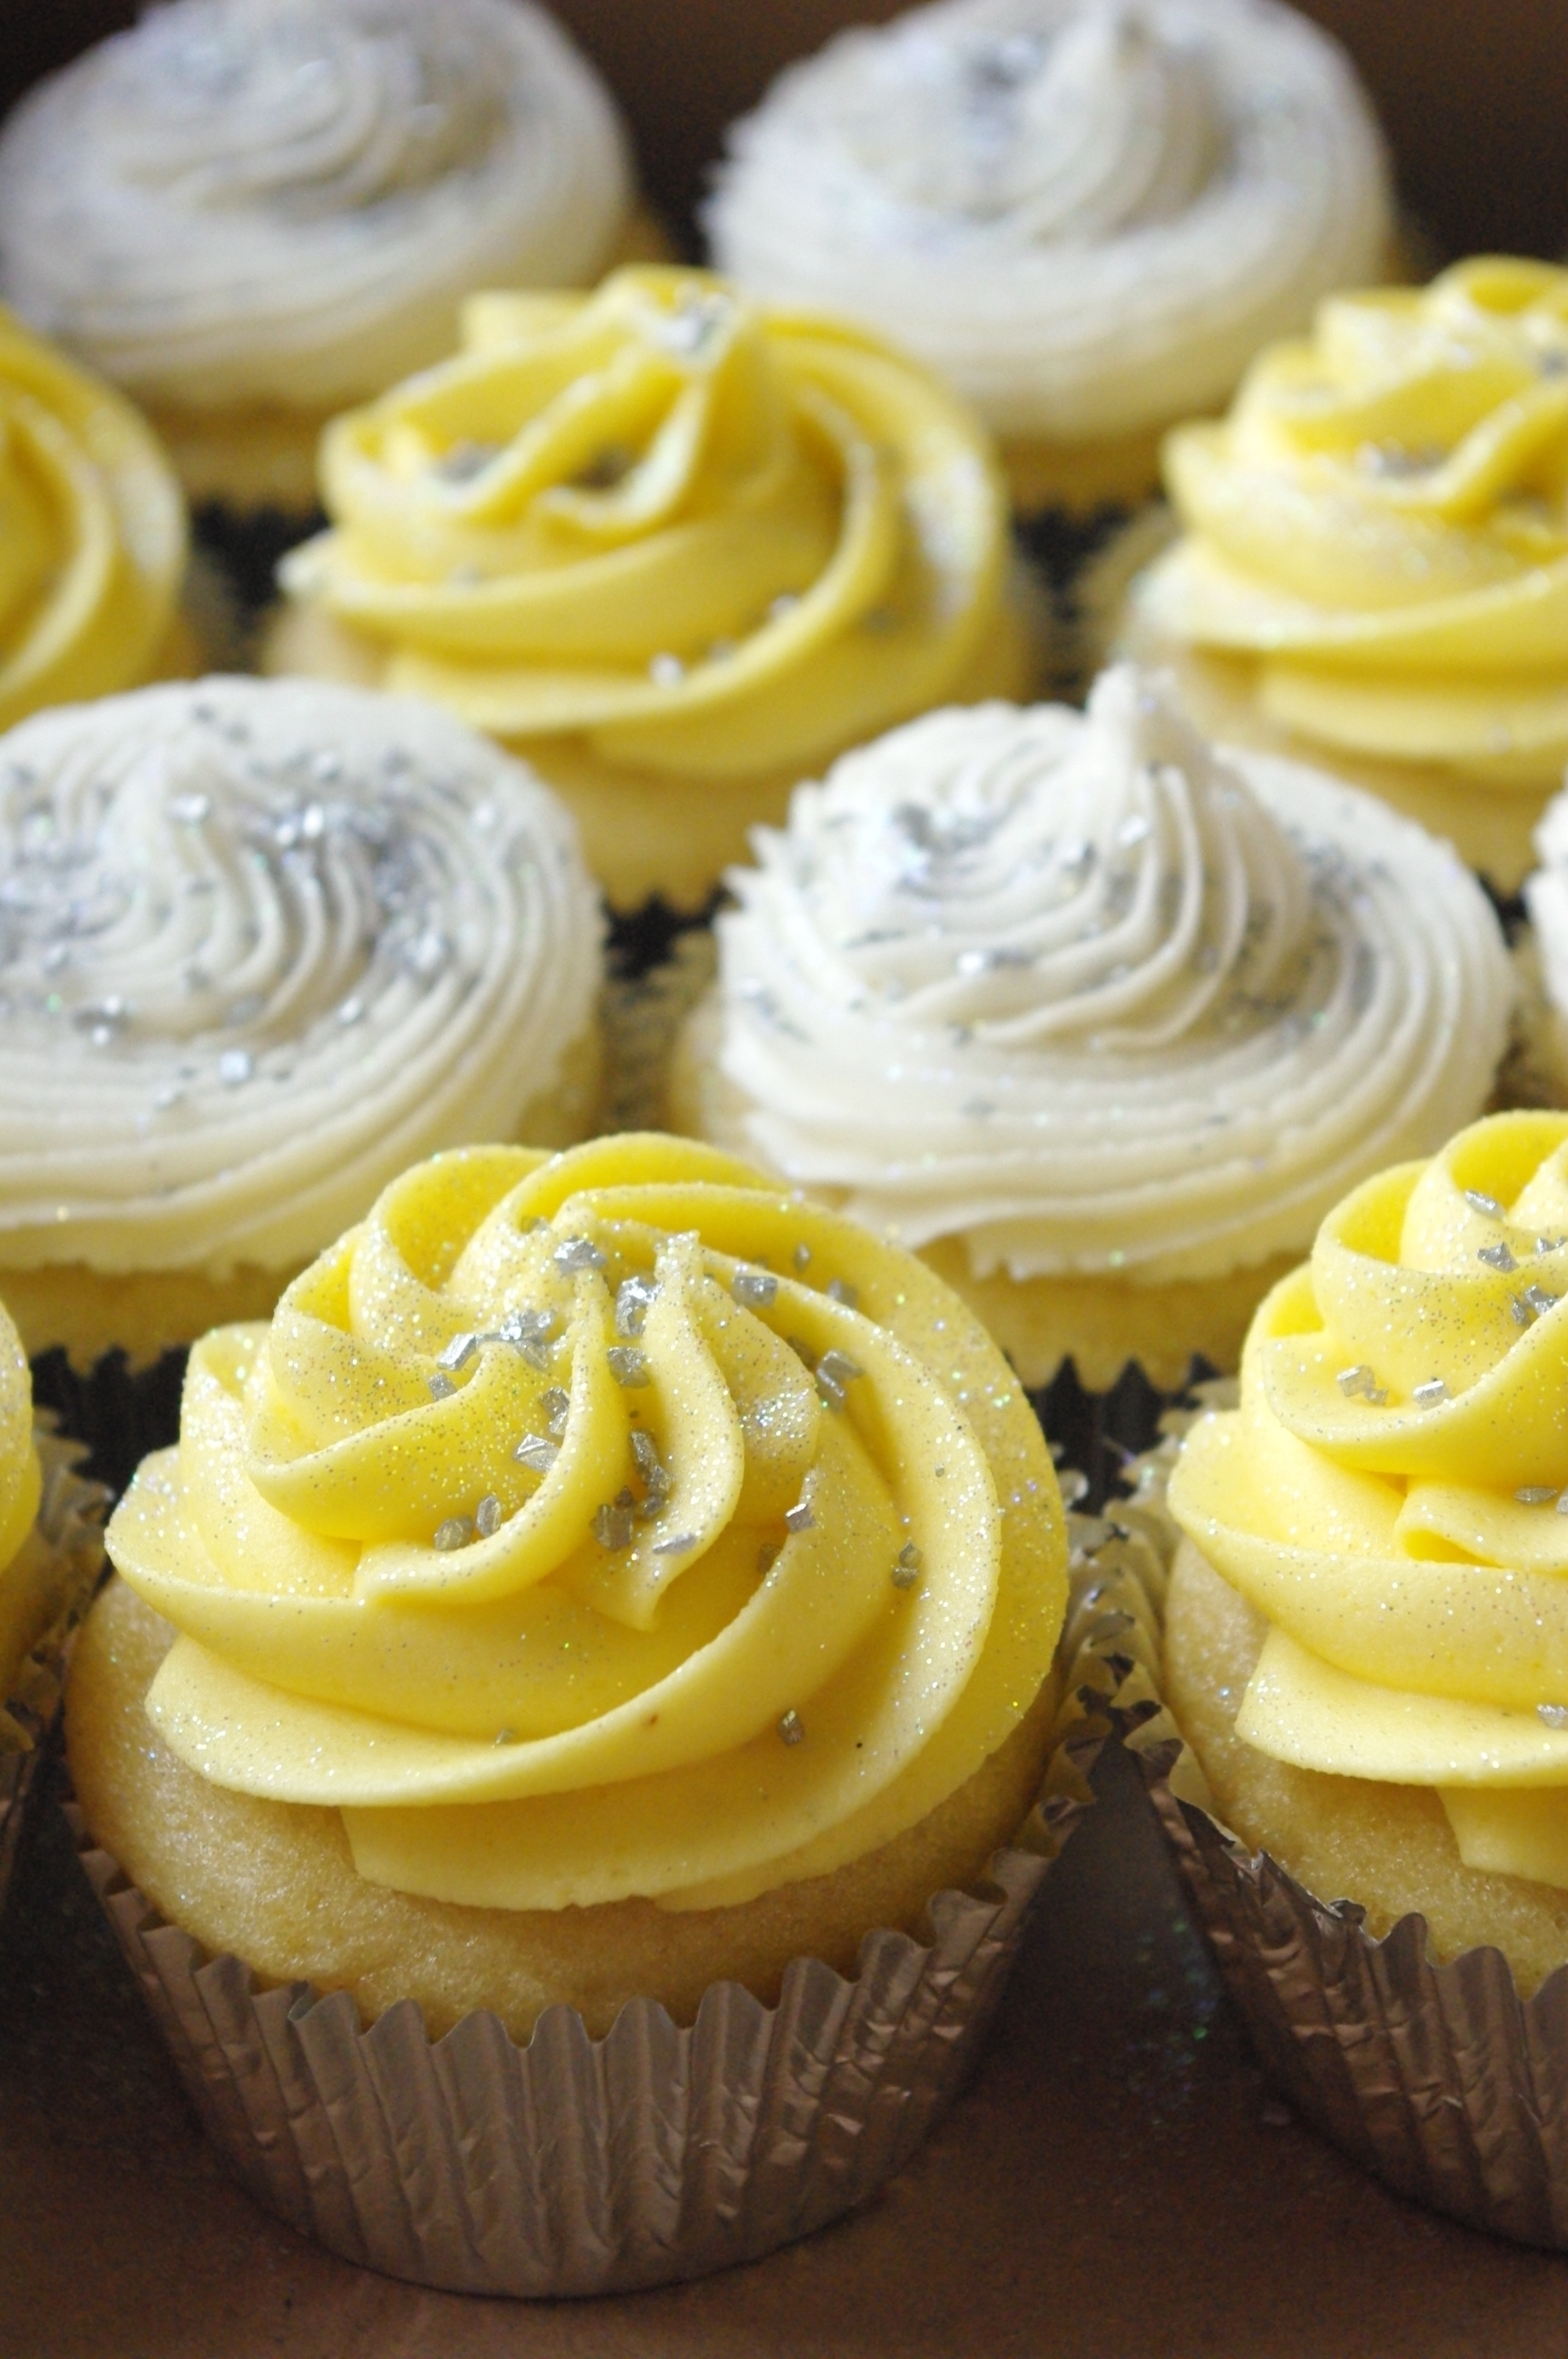 Yellow And White Icing On Vanilla Cupcakes